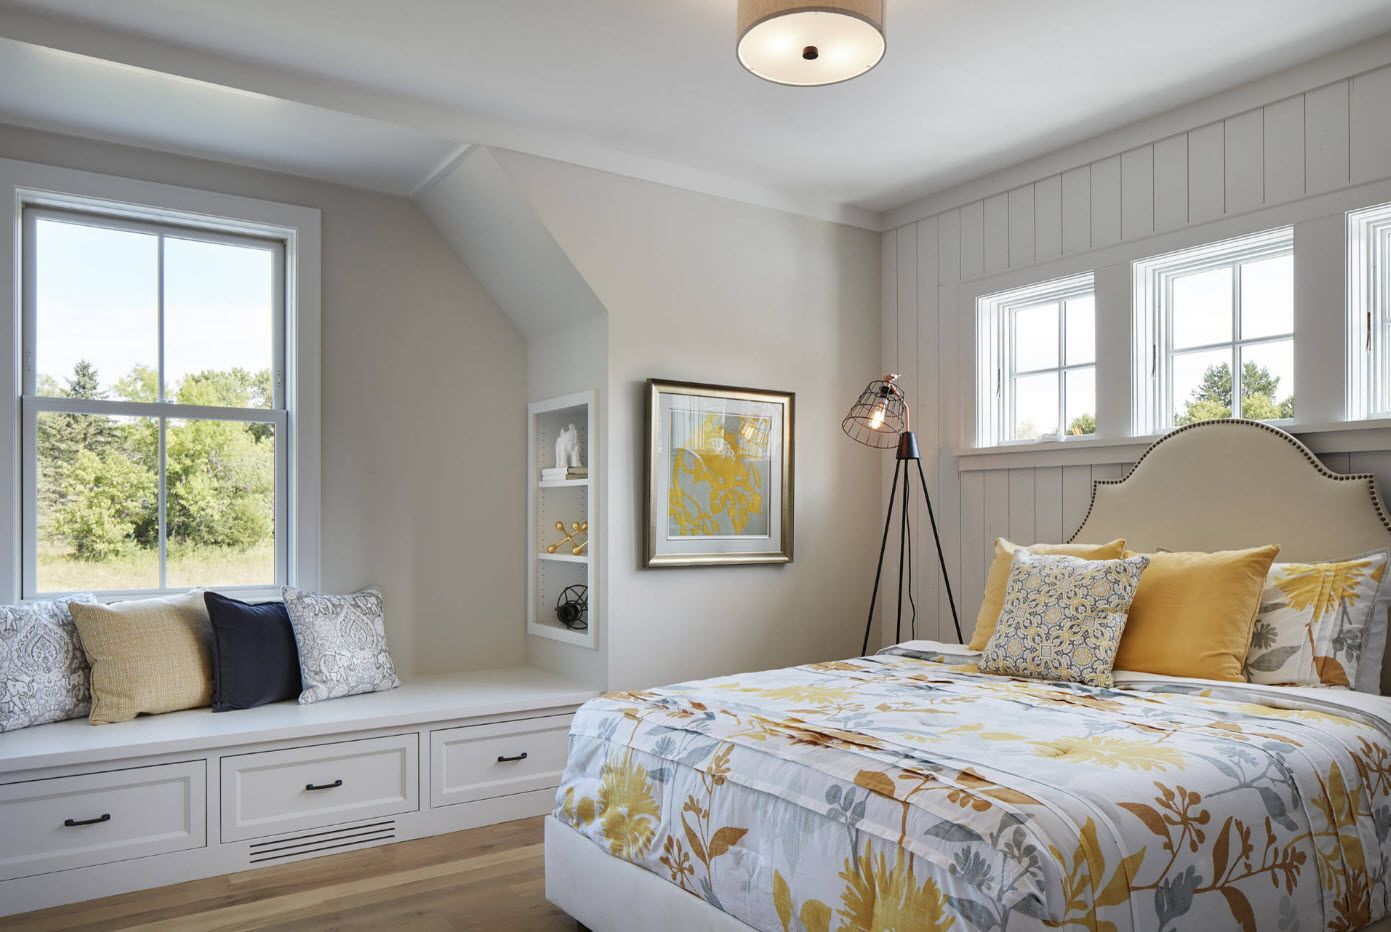 Typical classic bedroom interior with sleepe at the windowsill